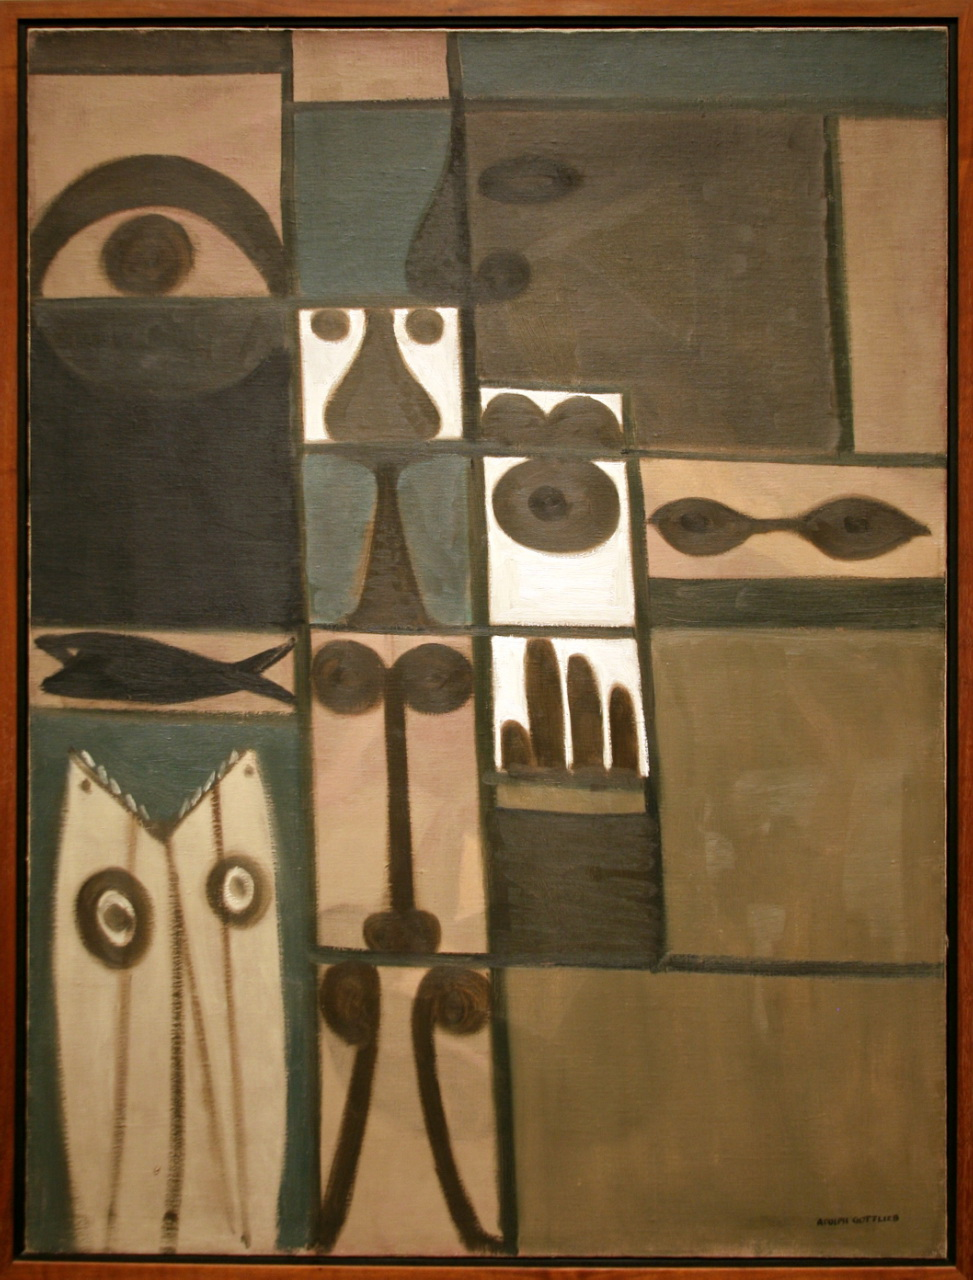 Pictograph, 1942, oil on canvas by Adolph Gottlieb via